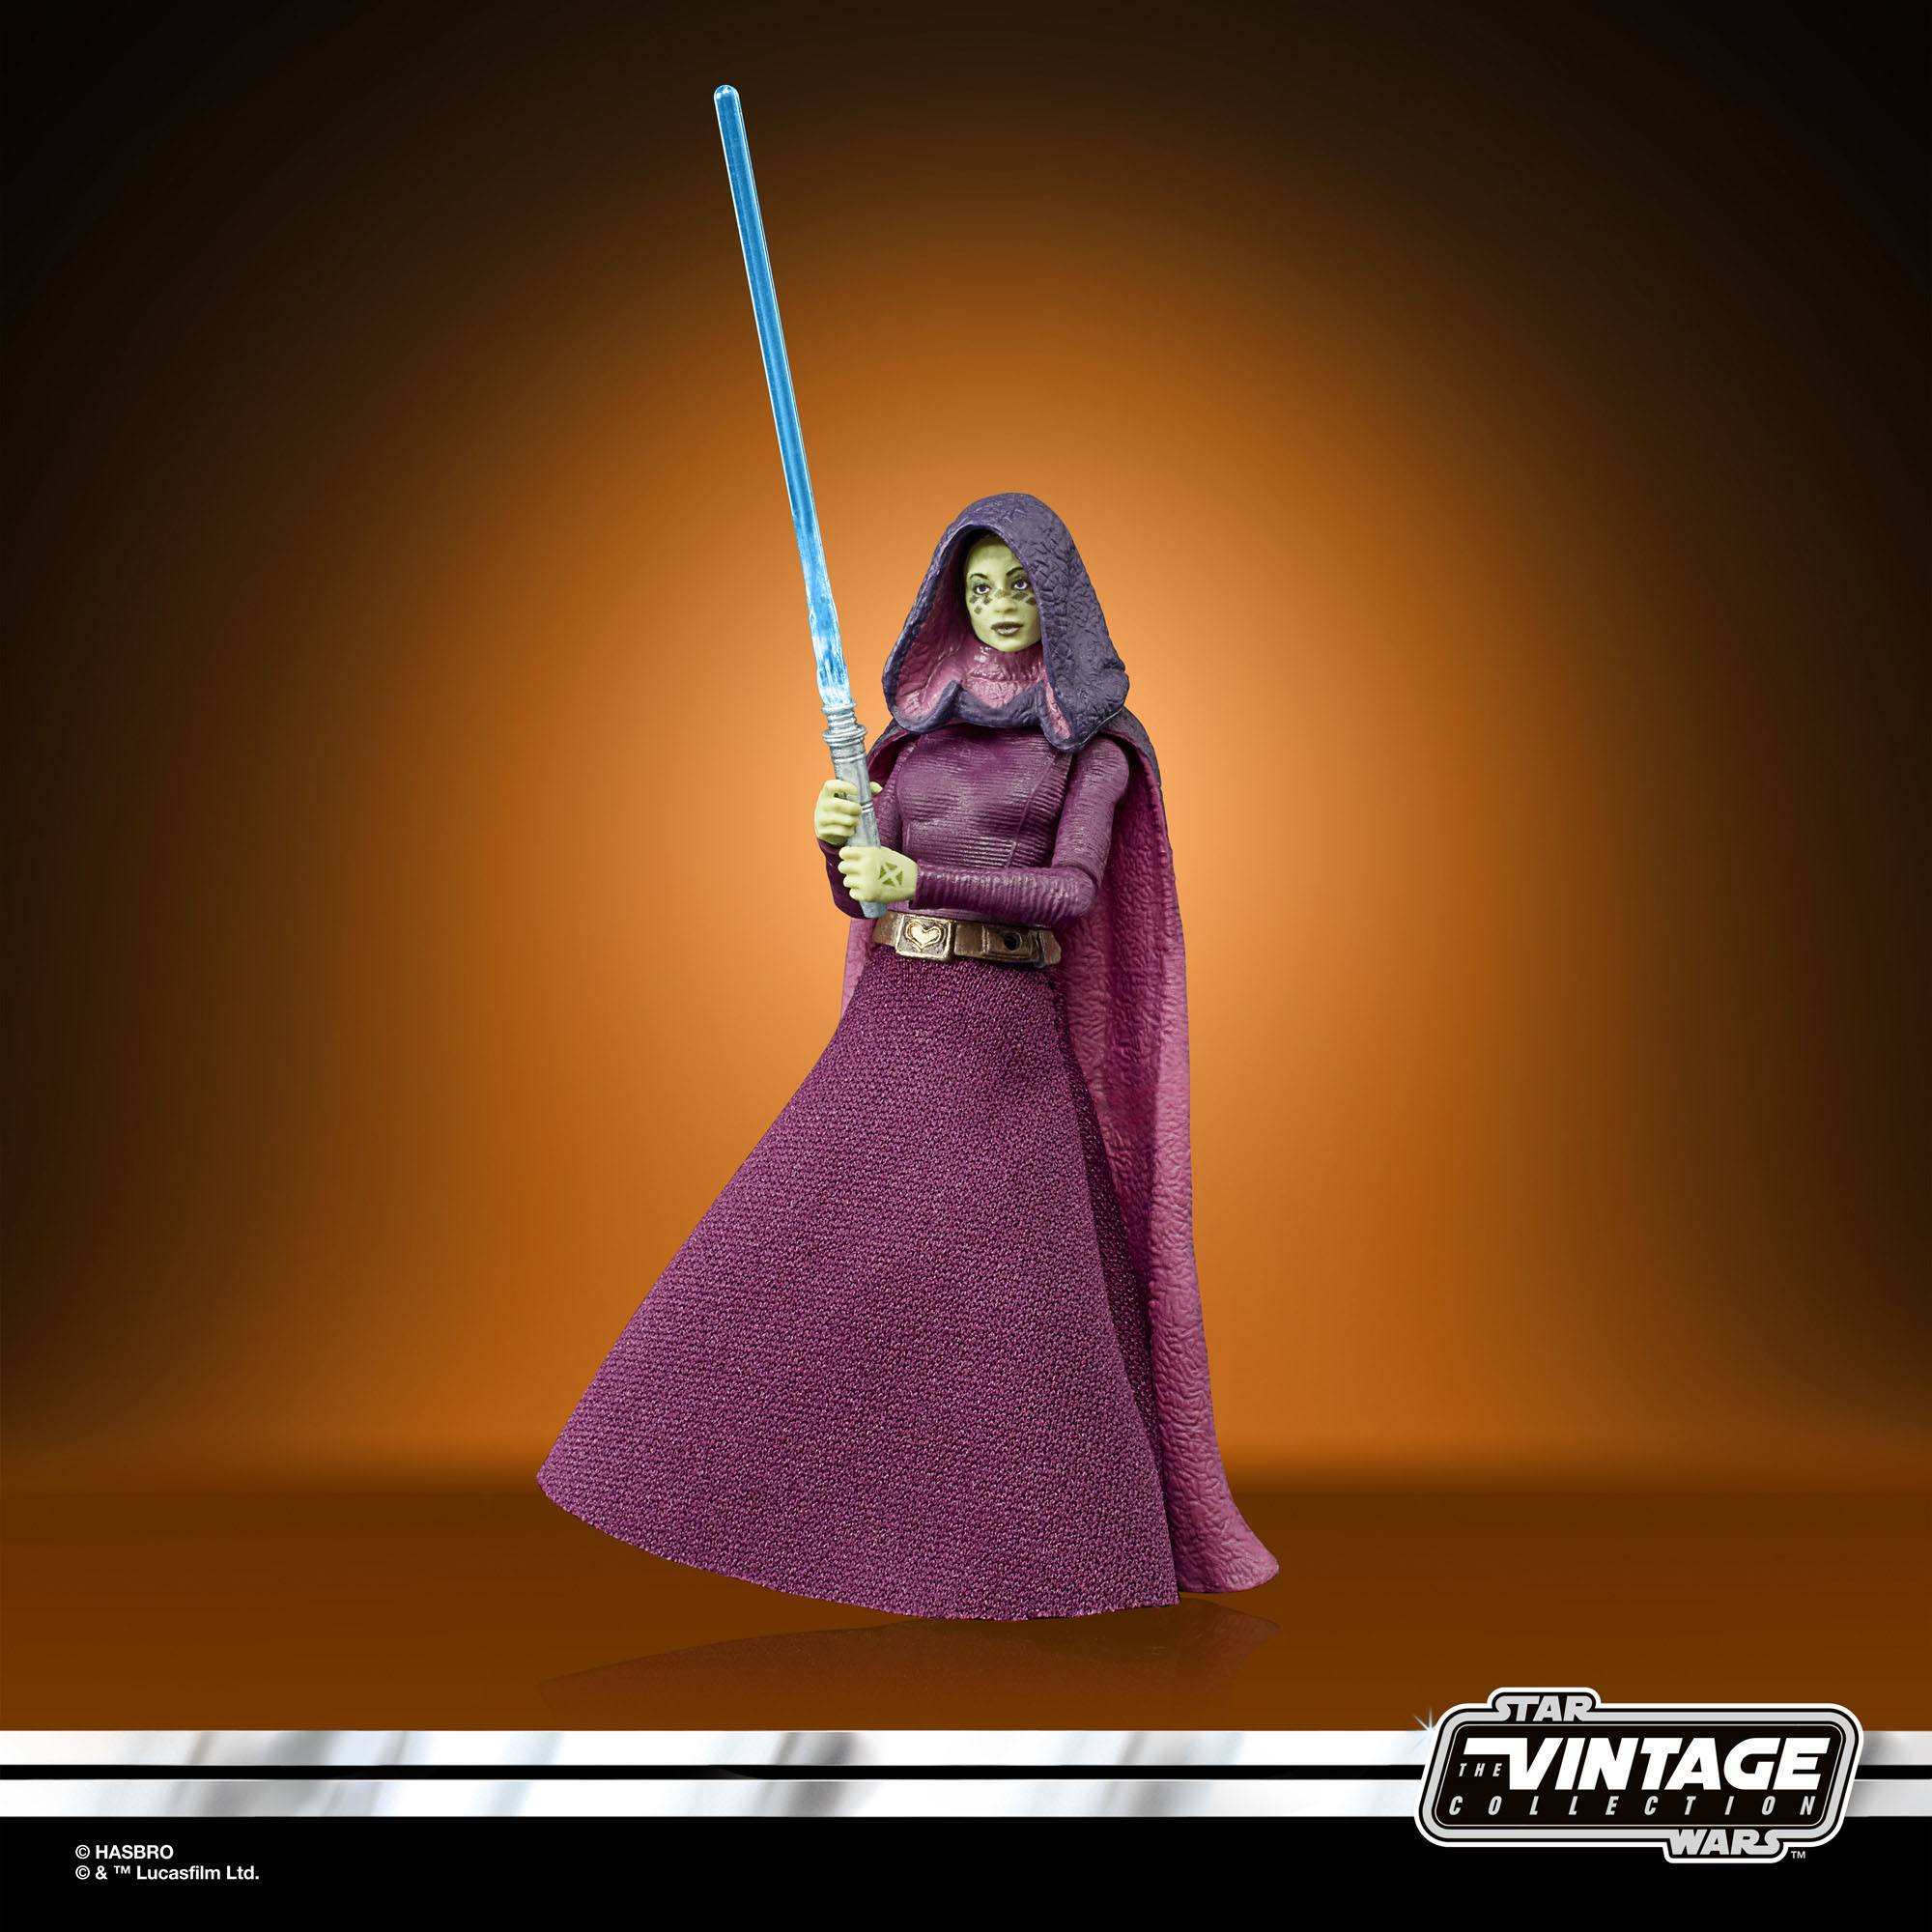 Star Wars The Clone Wars Vintage Collection Actionfigur 2022 Barriss Offee 10 cm F54175L00